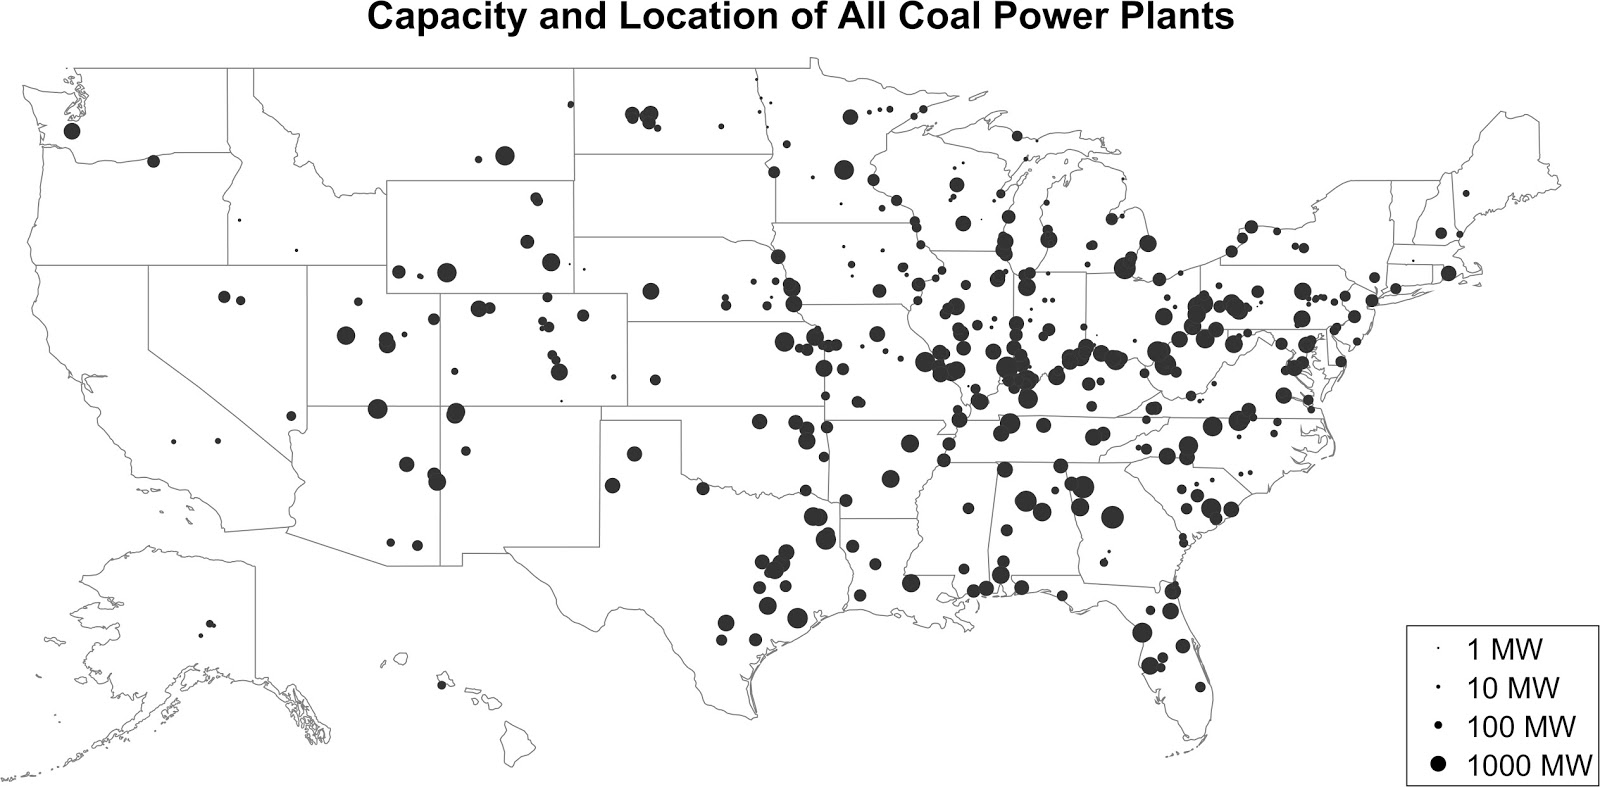 Capacity & location of all coal power plants